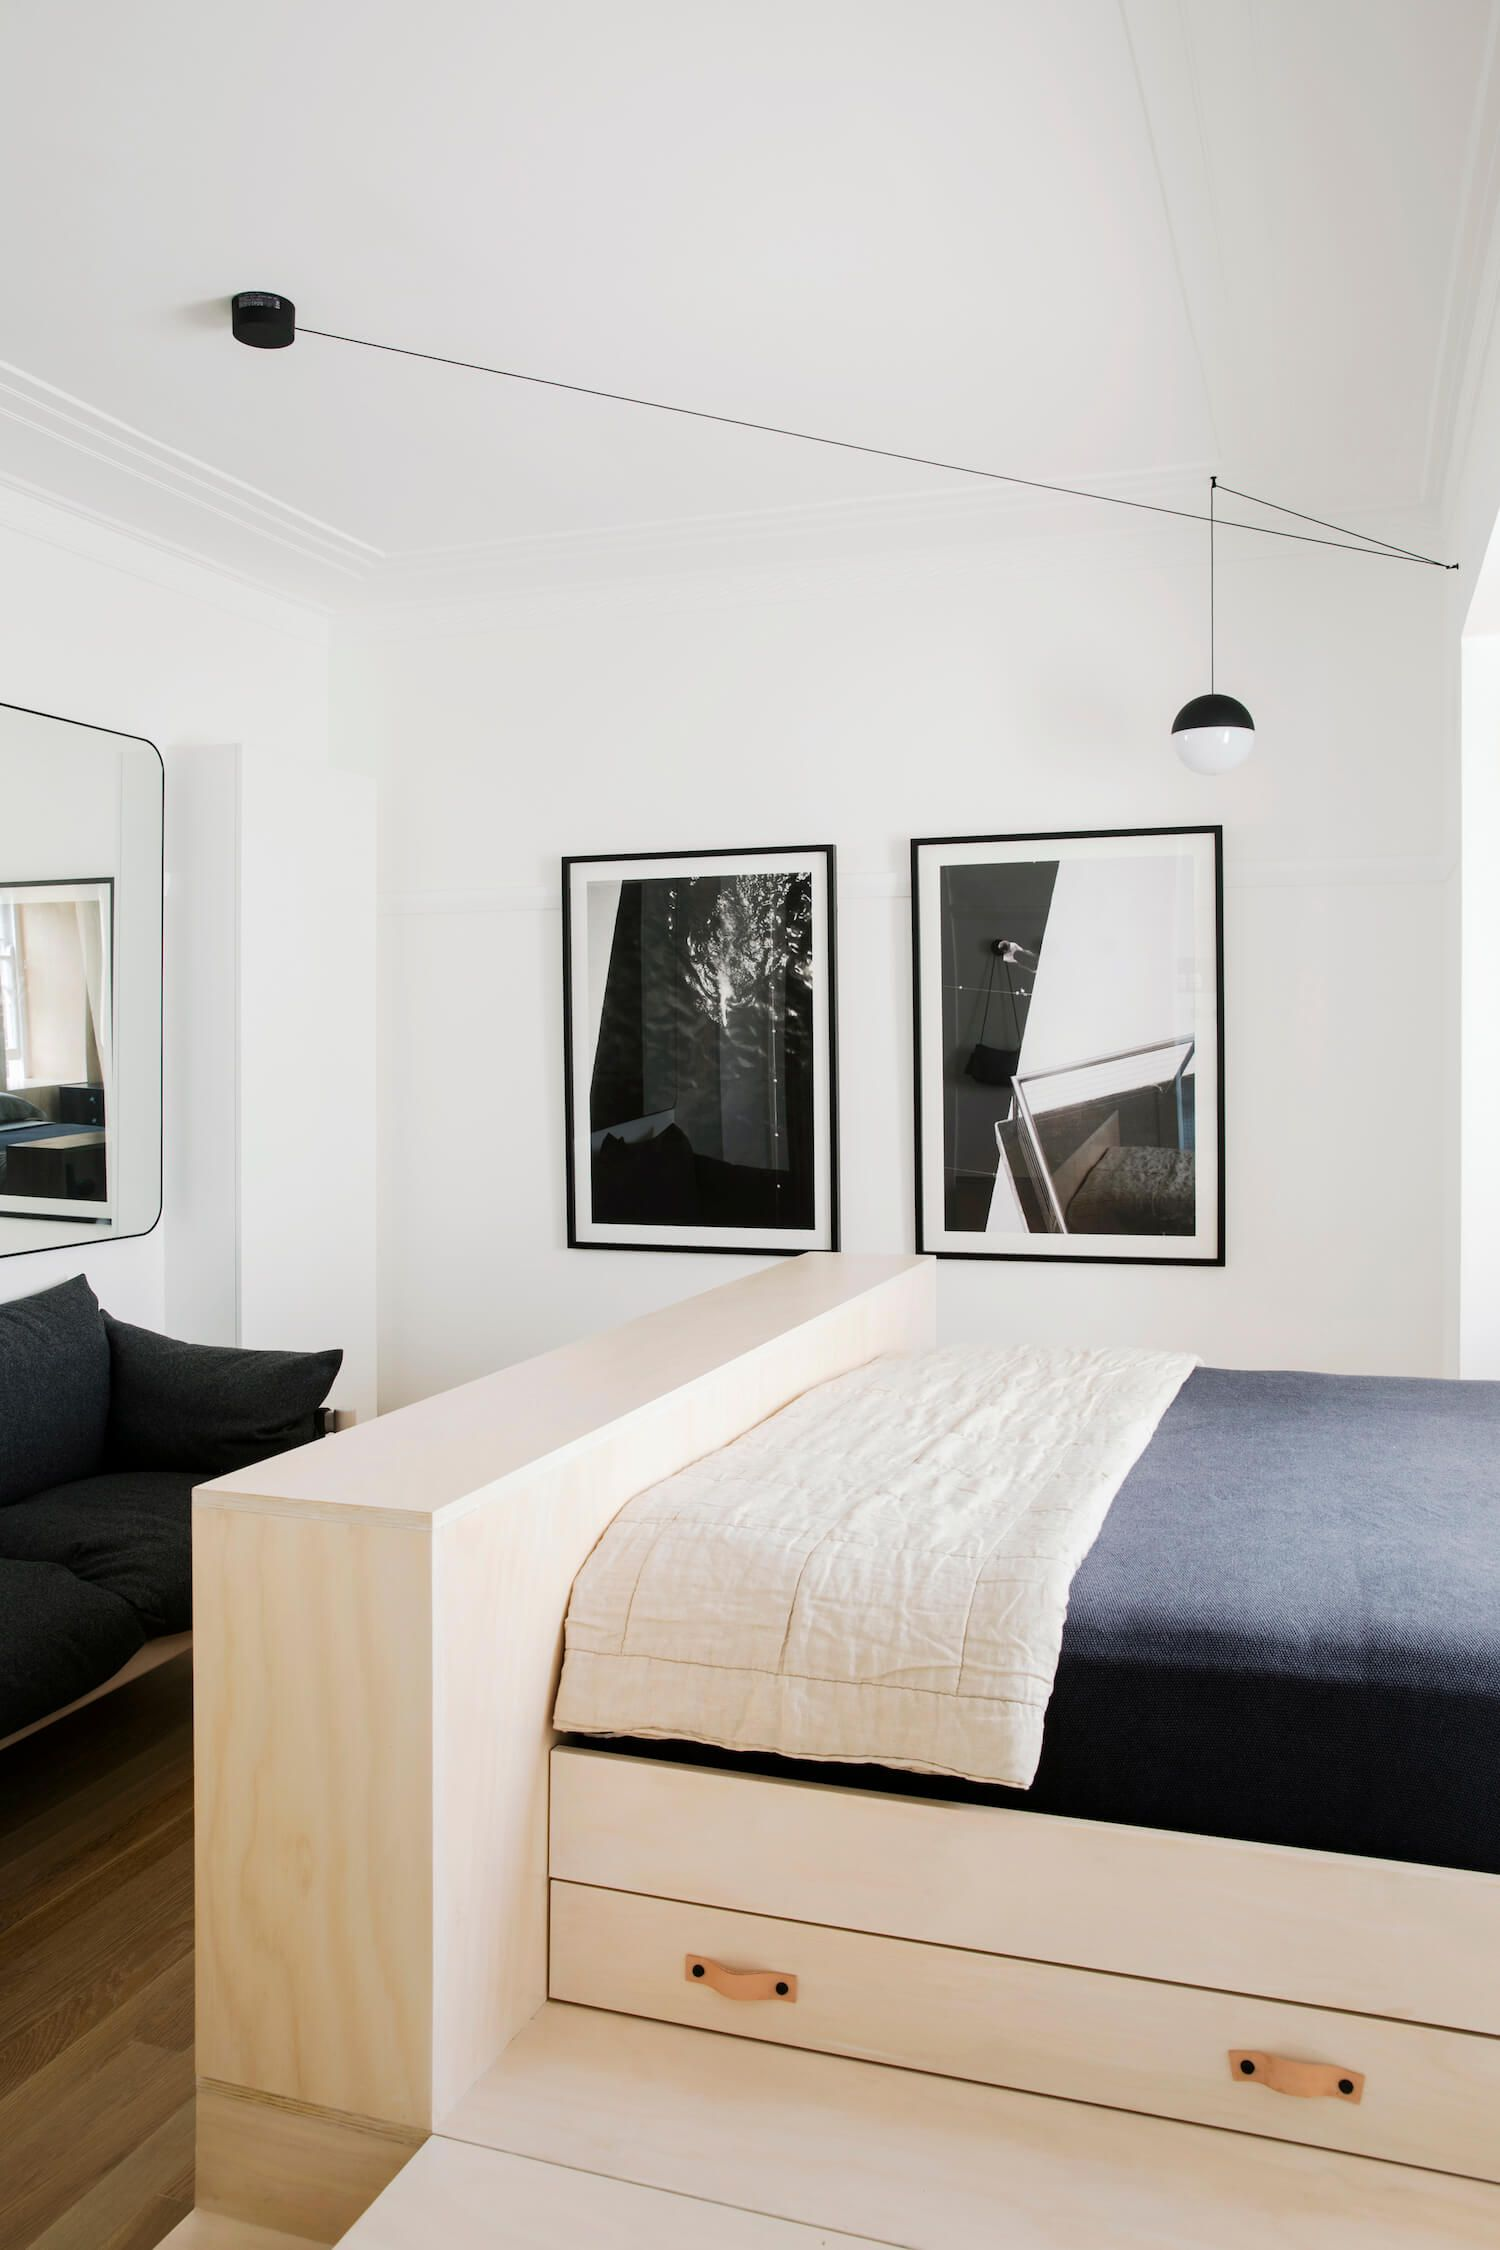 The Roundup: Small Spaces | 12.58.29 BEDS | Pinterest | Architects ...